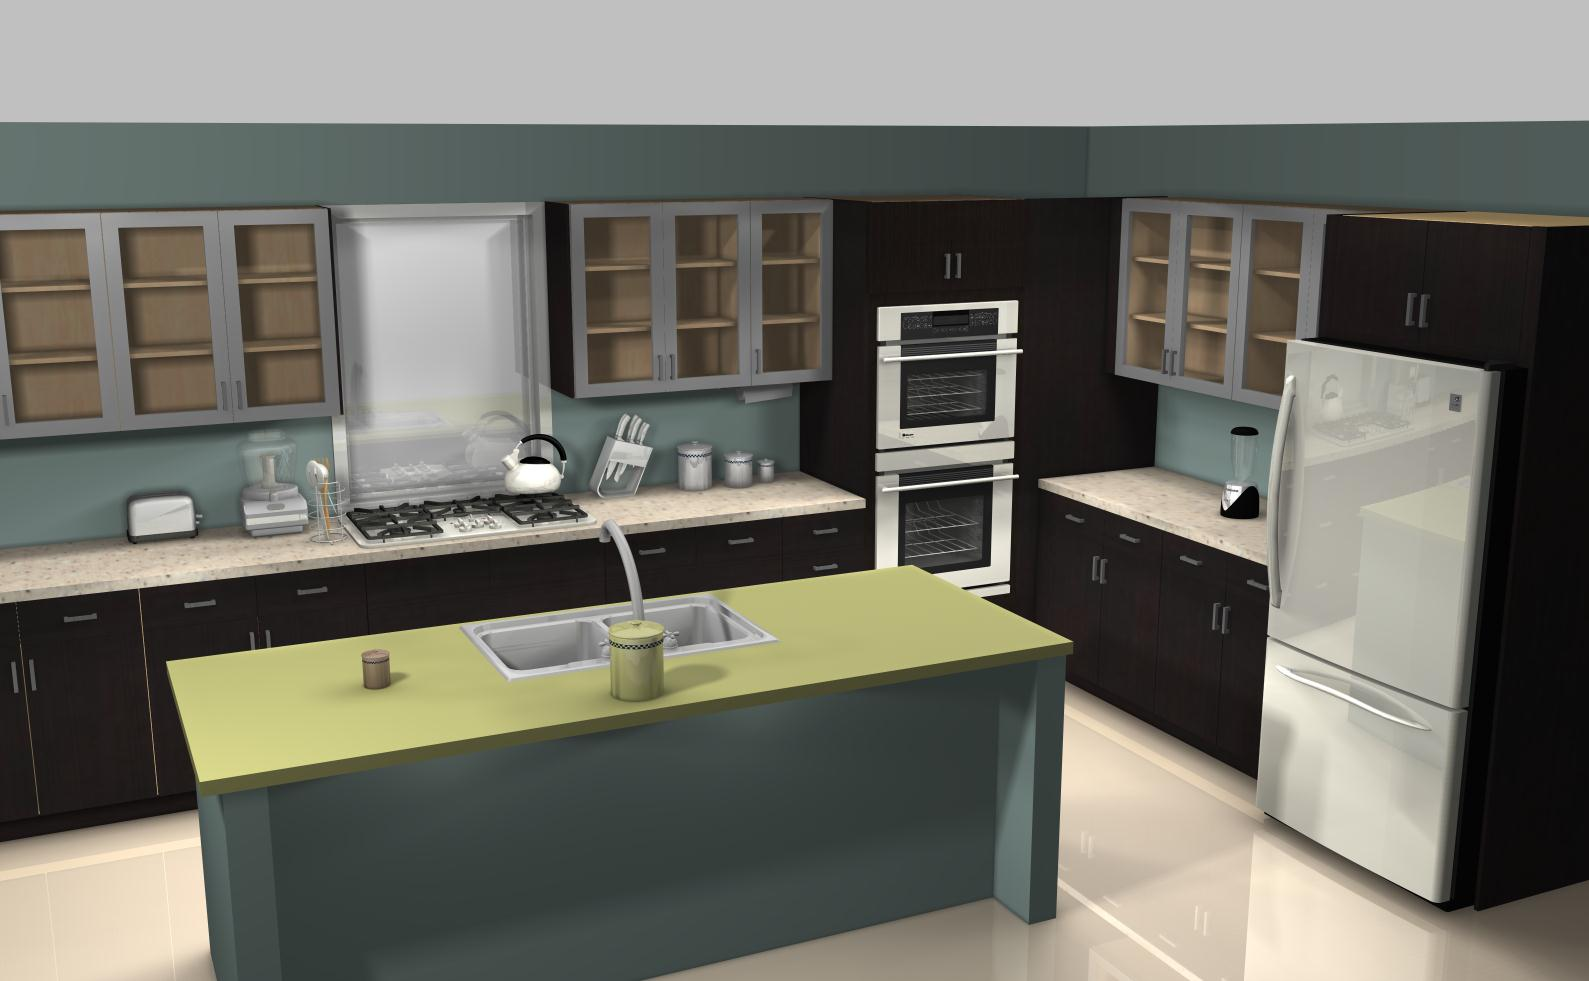 Famous kitchens get the look renee perry desperate for Renee s kitchen